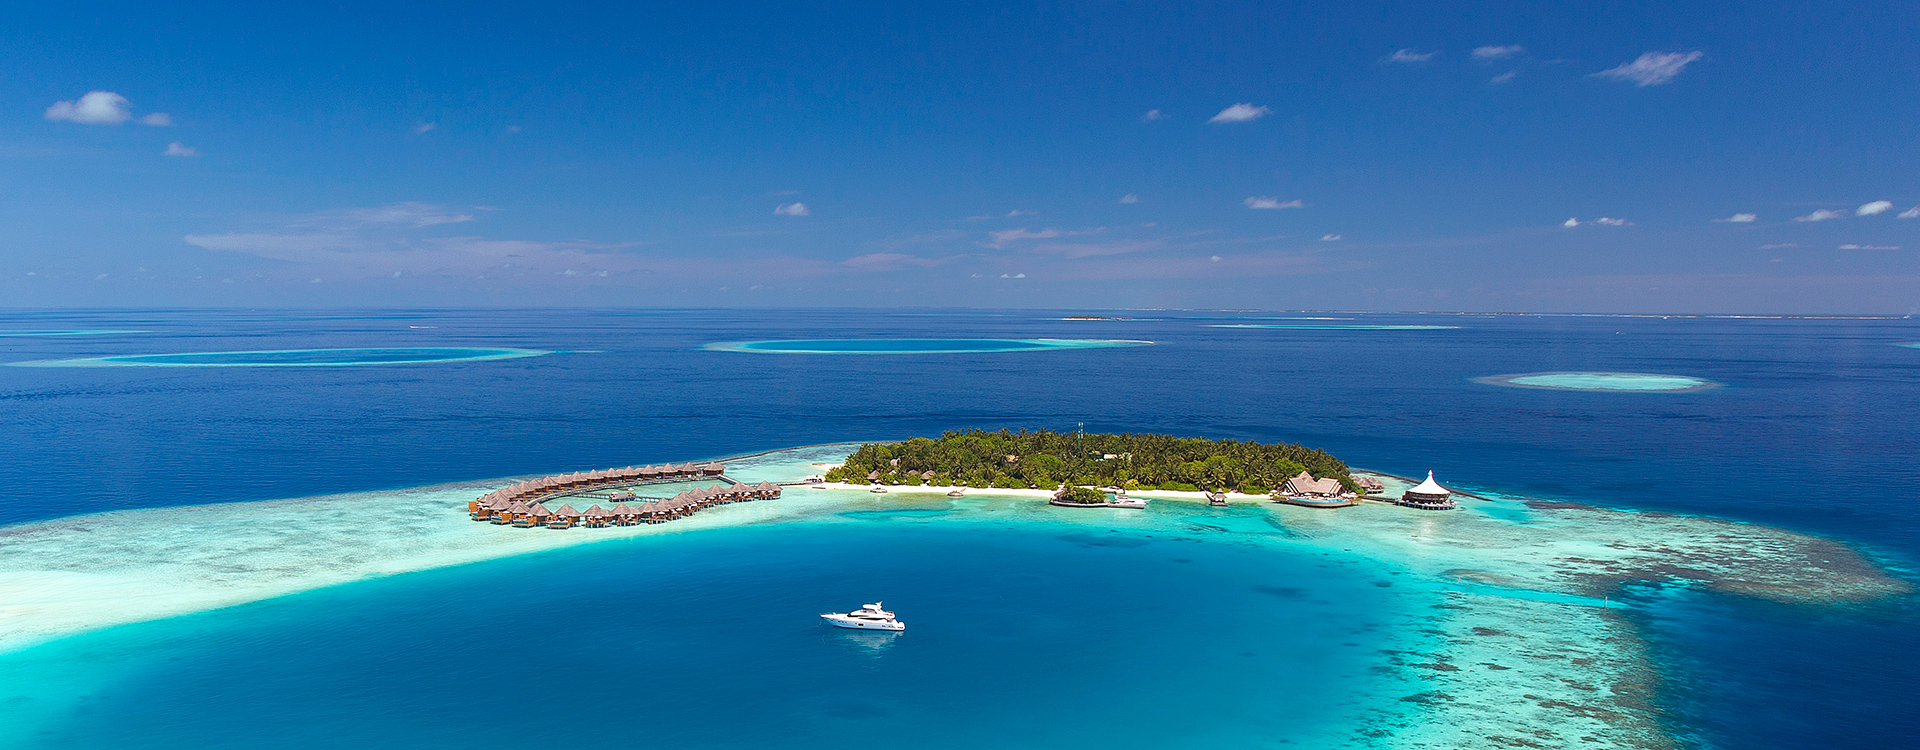 Baros Maldives Aerial View